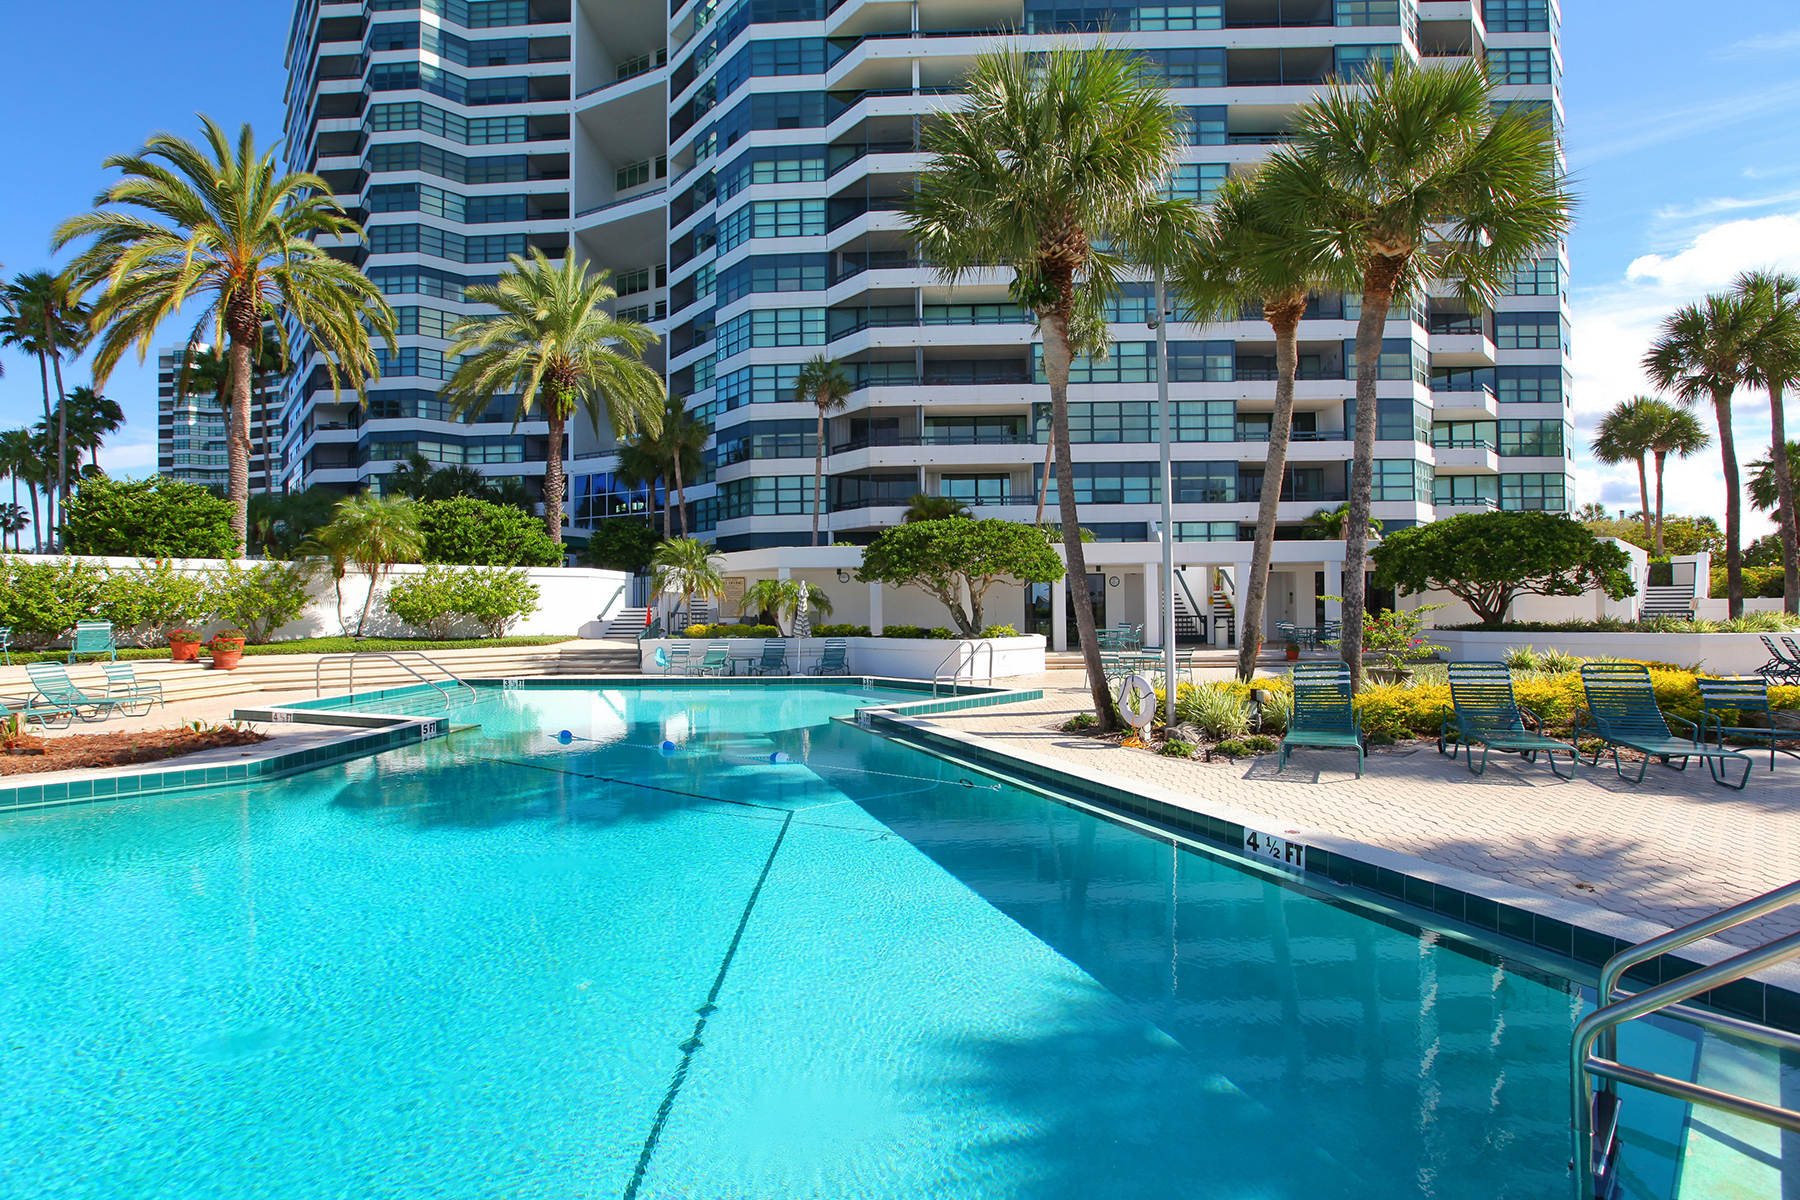 Condominio per Vendita alle ore CONDO ON THE BAY 888 Blvd Of The Arts 1901, 1902 Sarasota, Florida, 34236 Stati Uniti